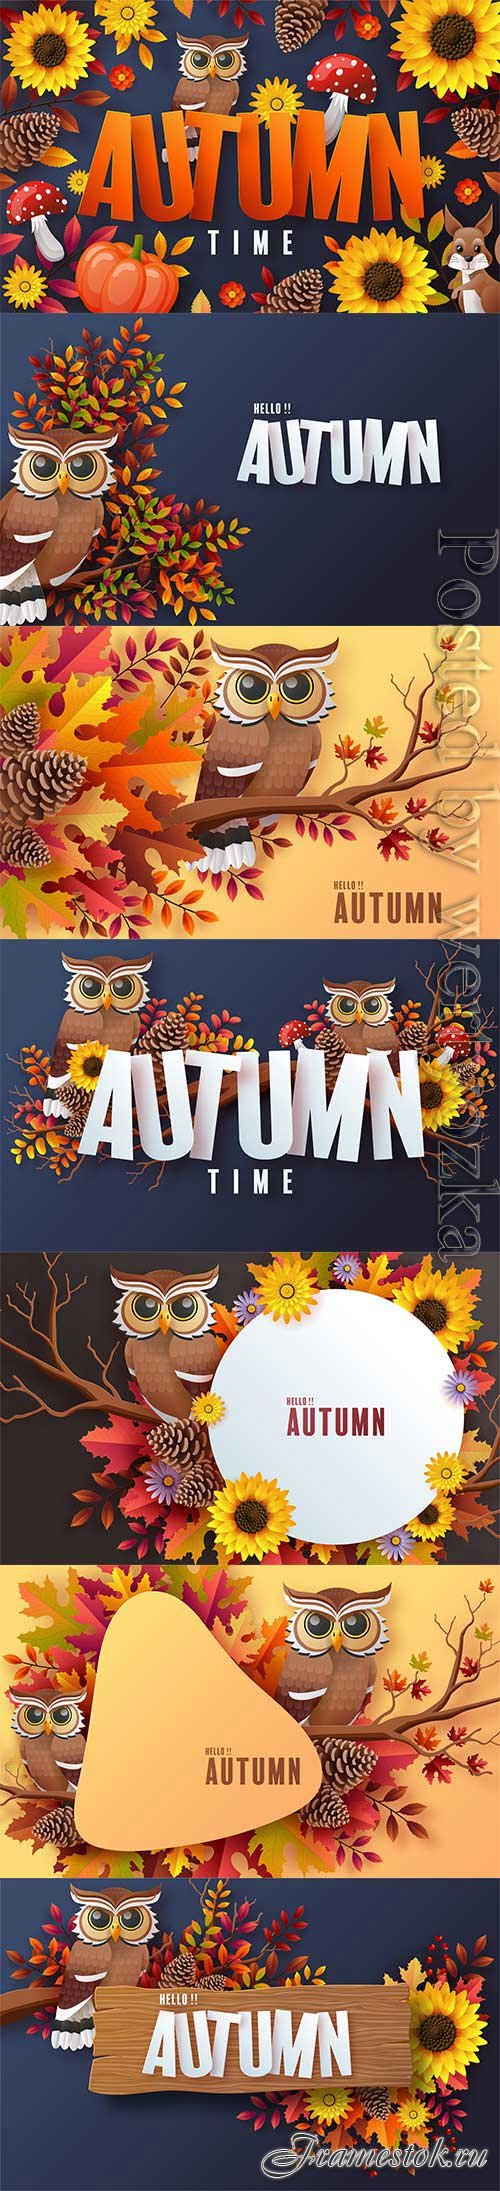 Autumn holiday seasonal vector background with colorful autumn leaves